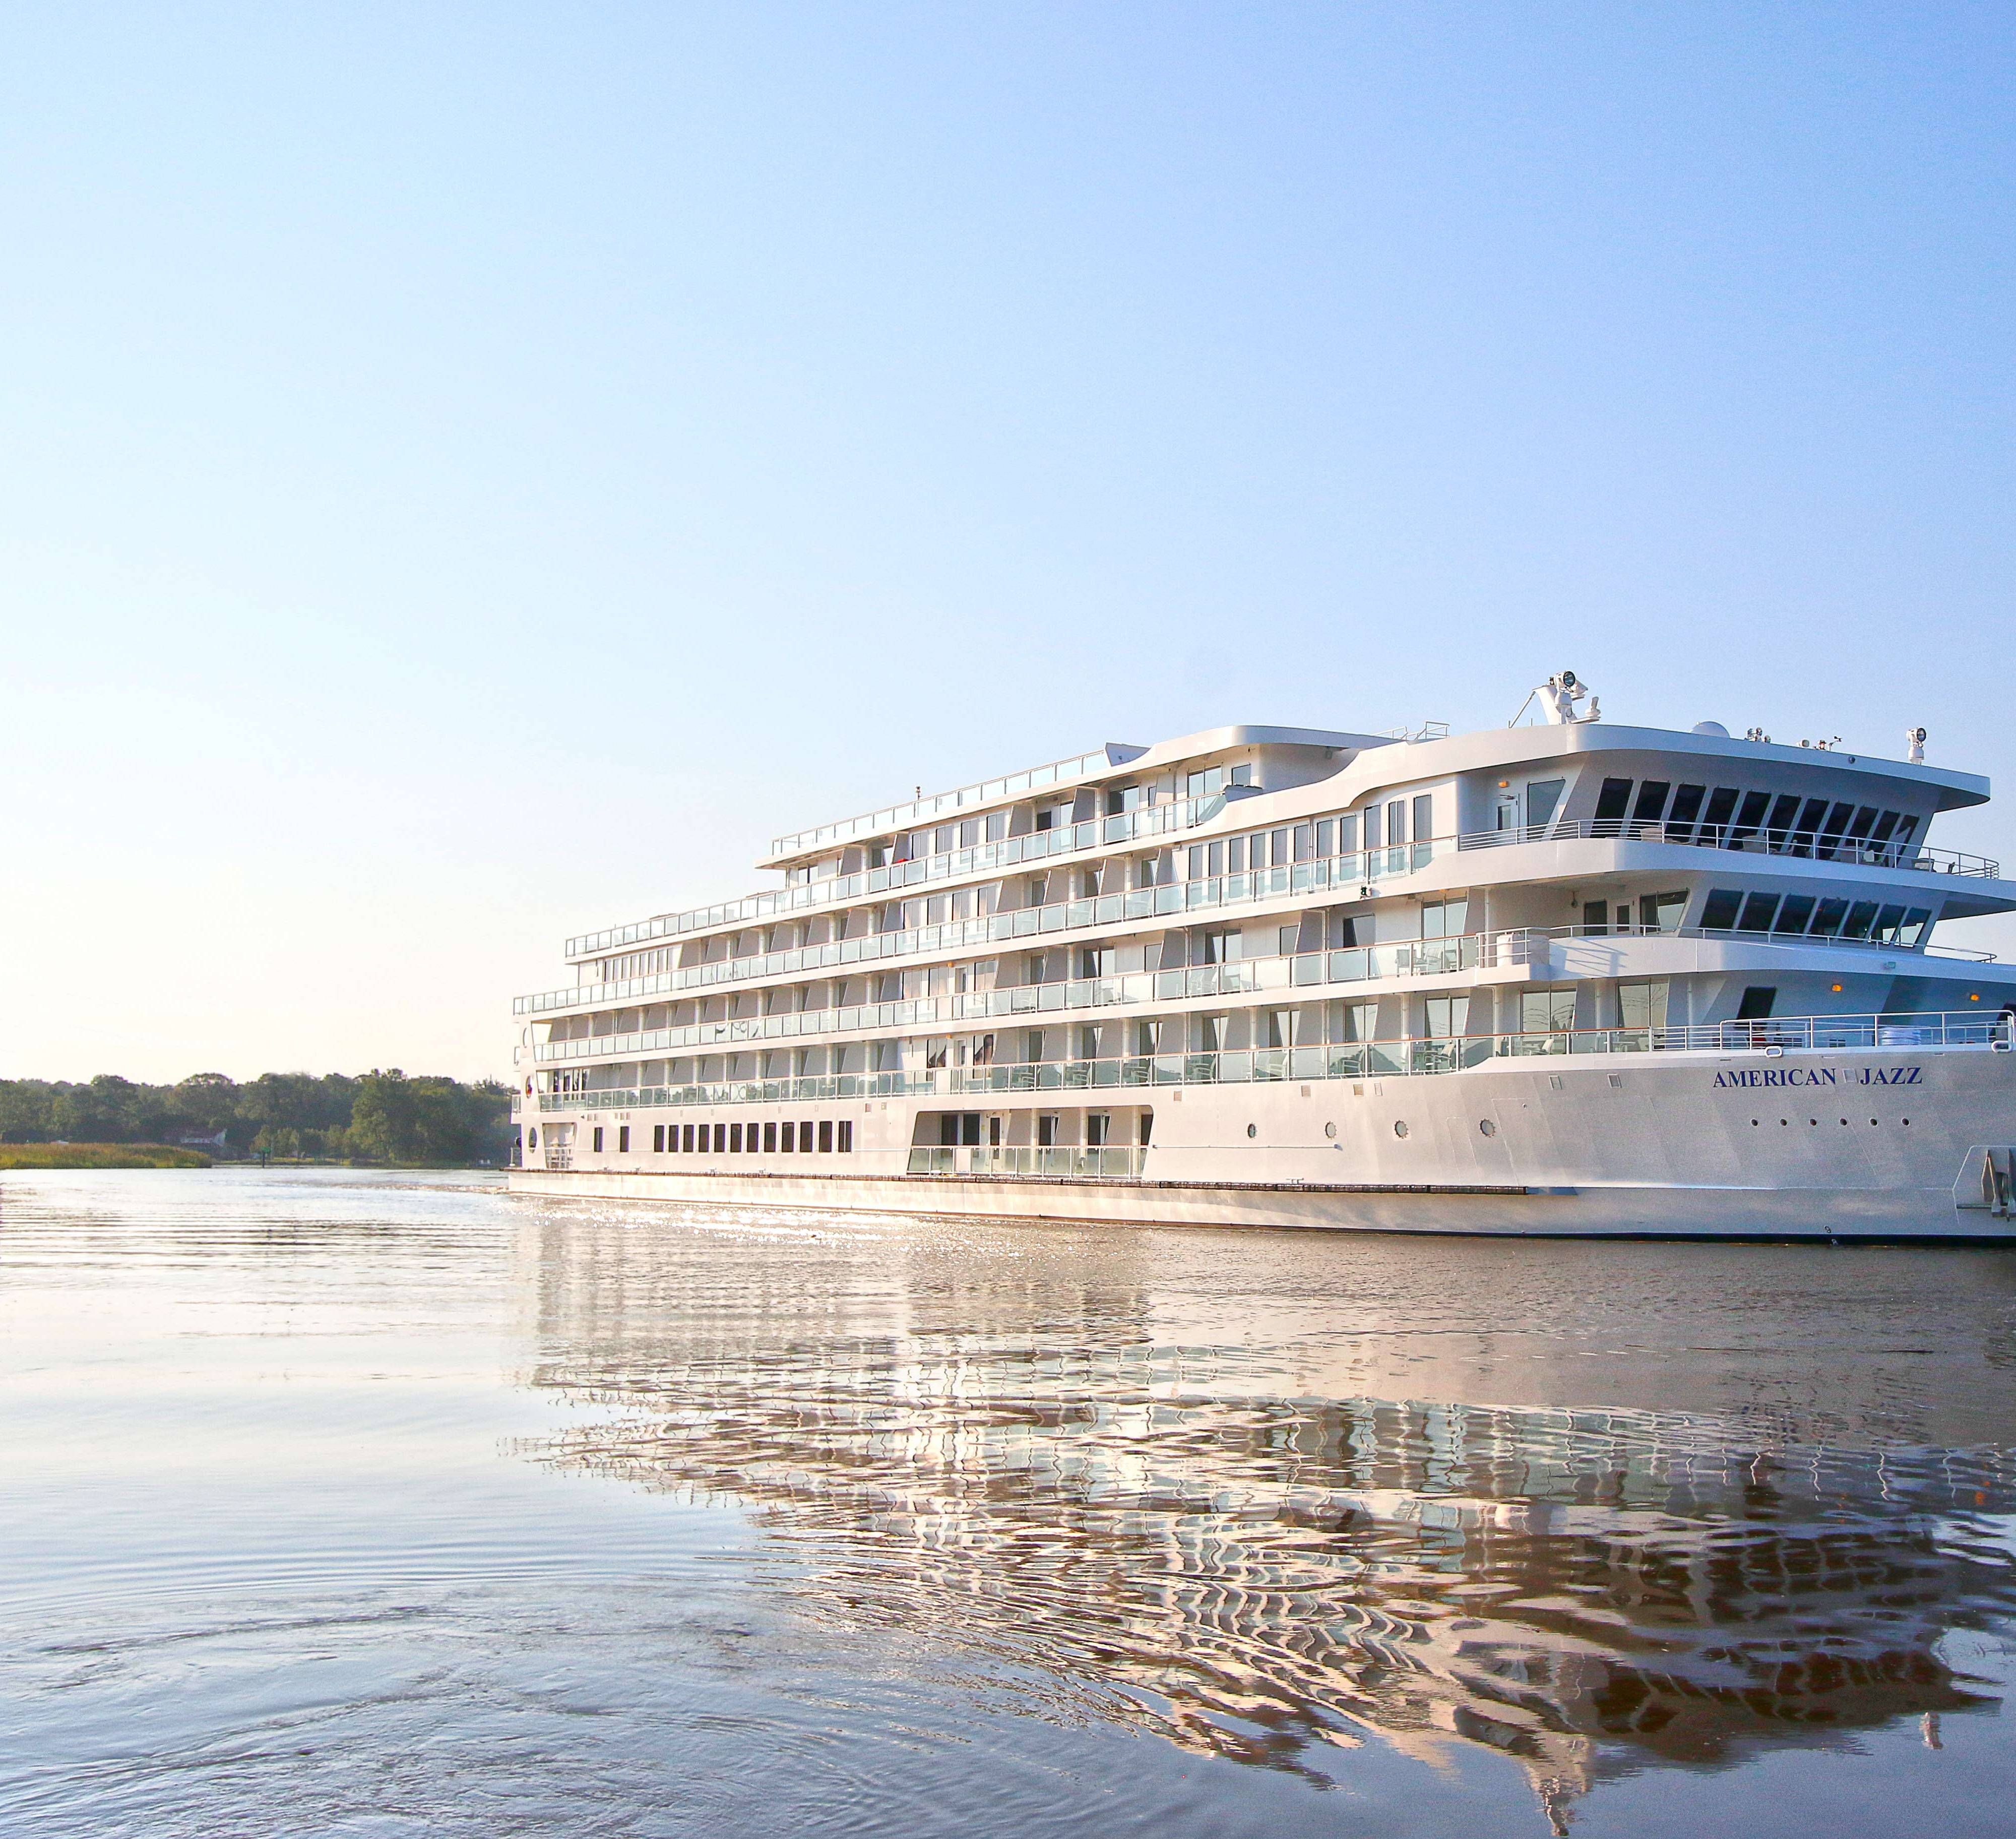 American Cruise Lines adds a new riverboat to its fleet